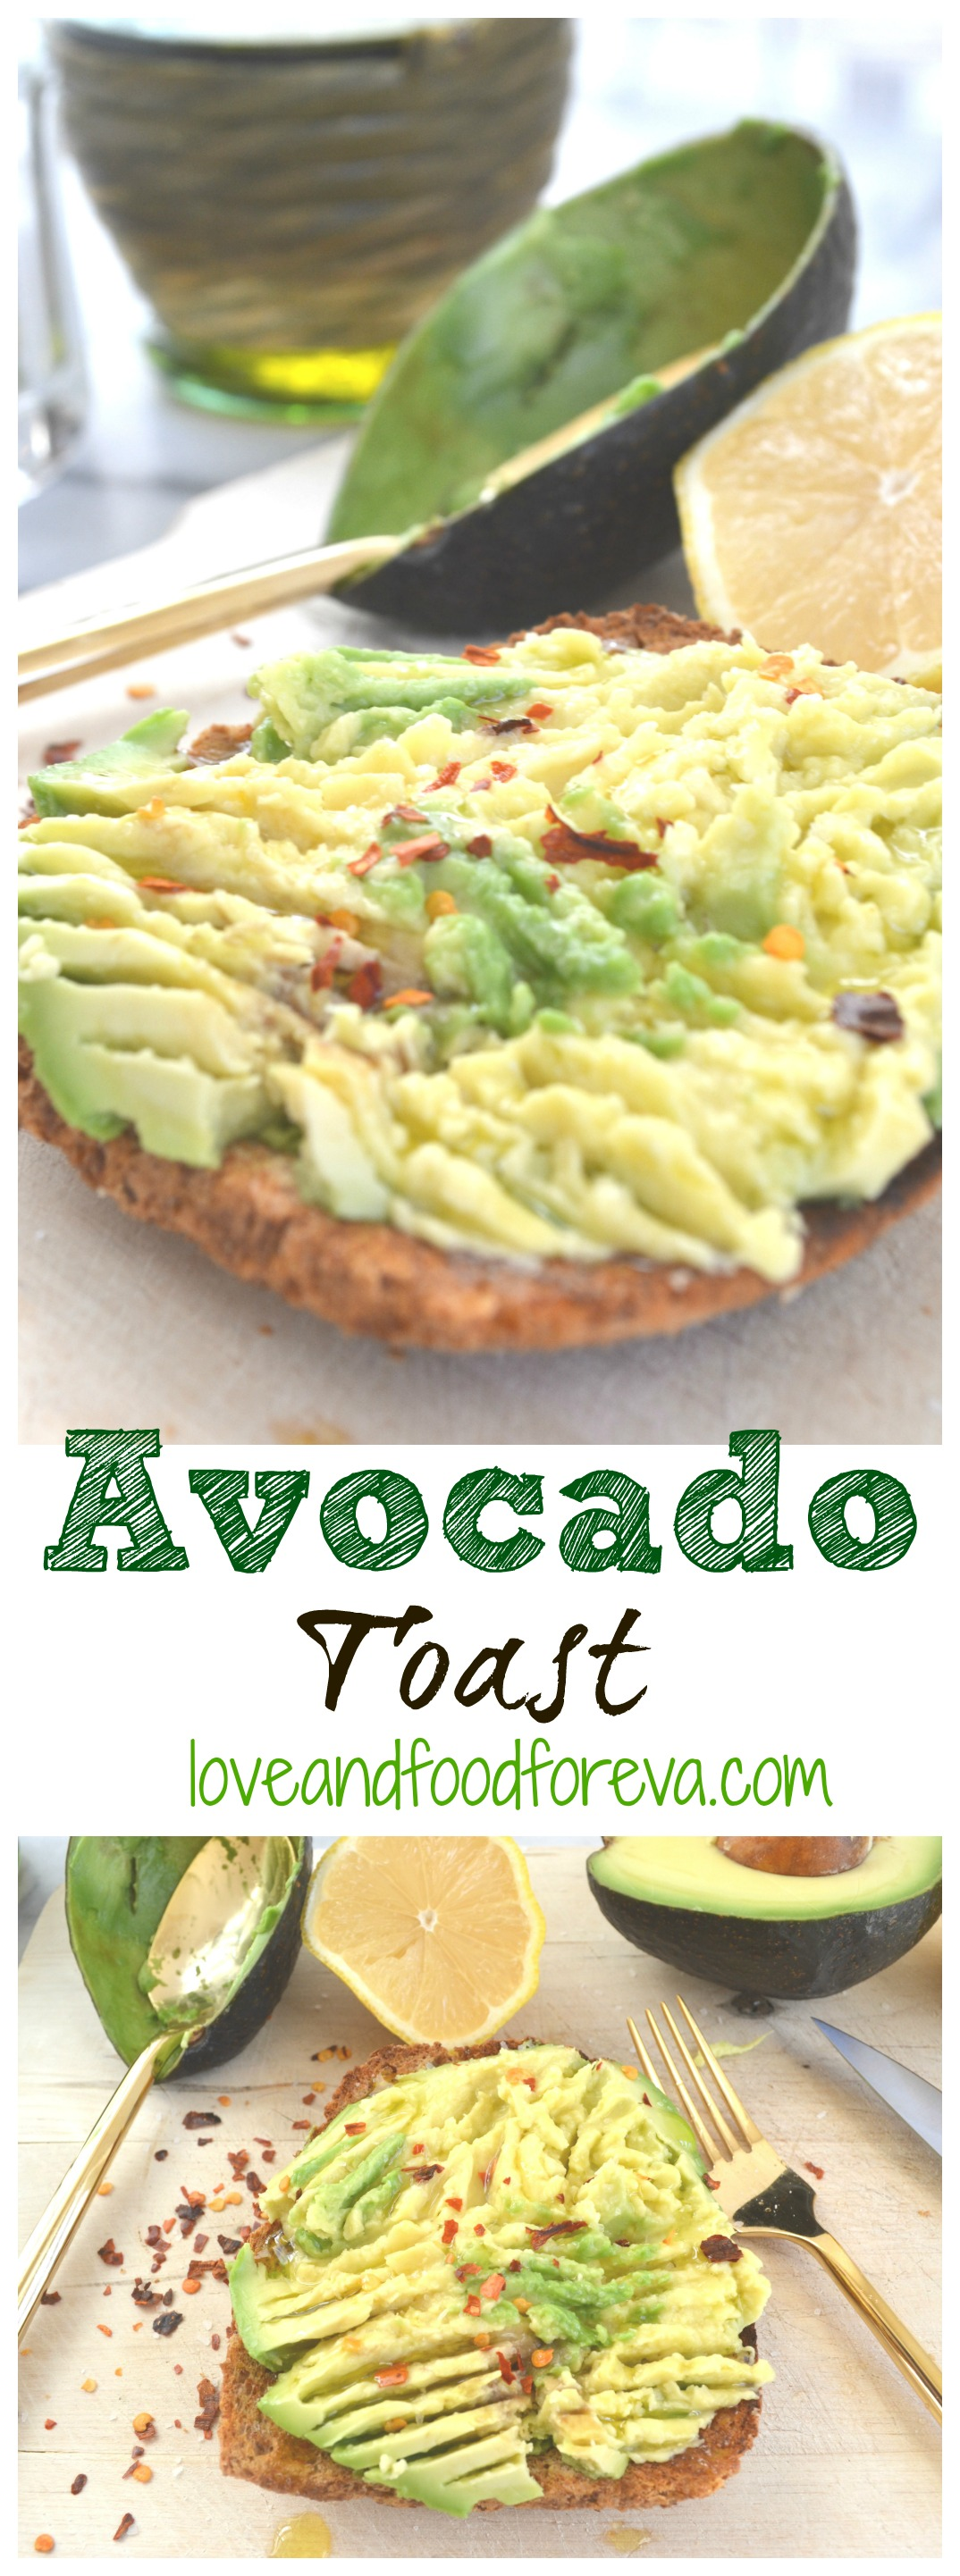 Avocado Toast - a quick, healthy, and filling breakfast!